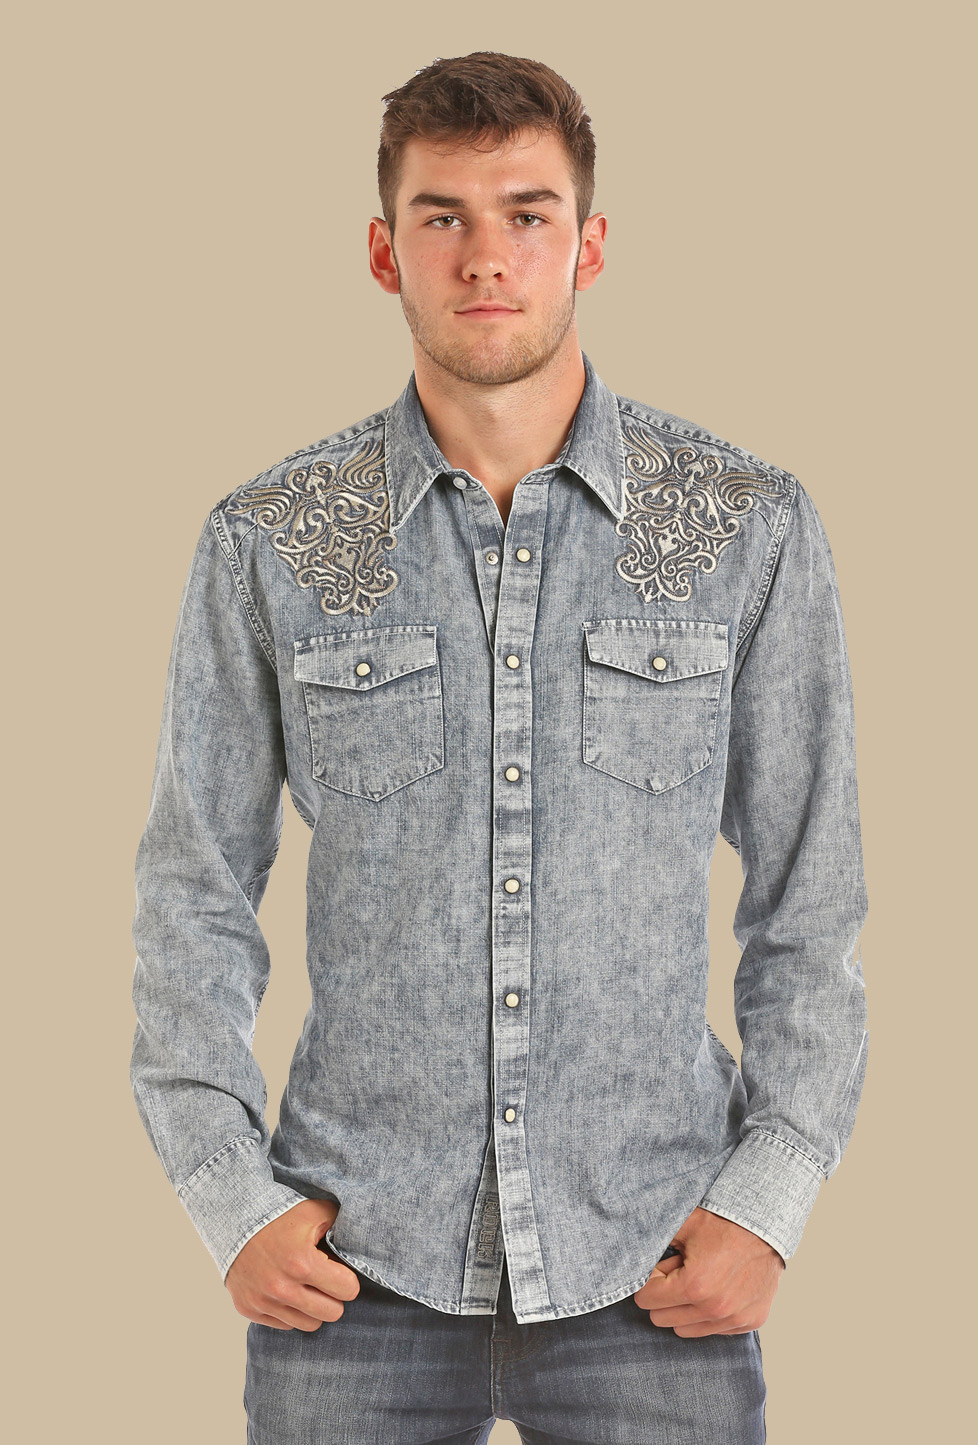 34918eac02 PANHANDLE SLIM MEN S LIGHT BLEACH WASHED DENIM Western ...